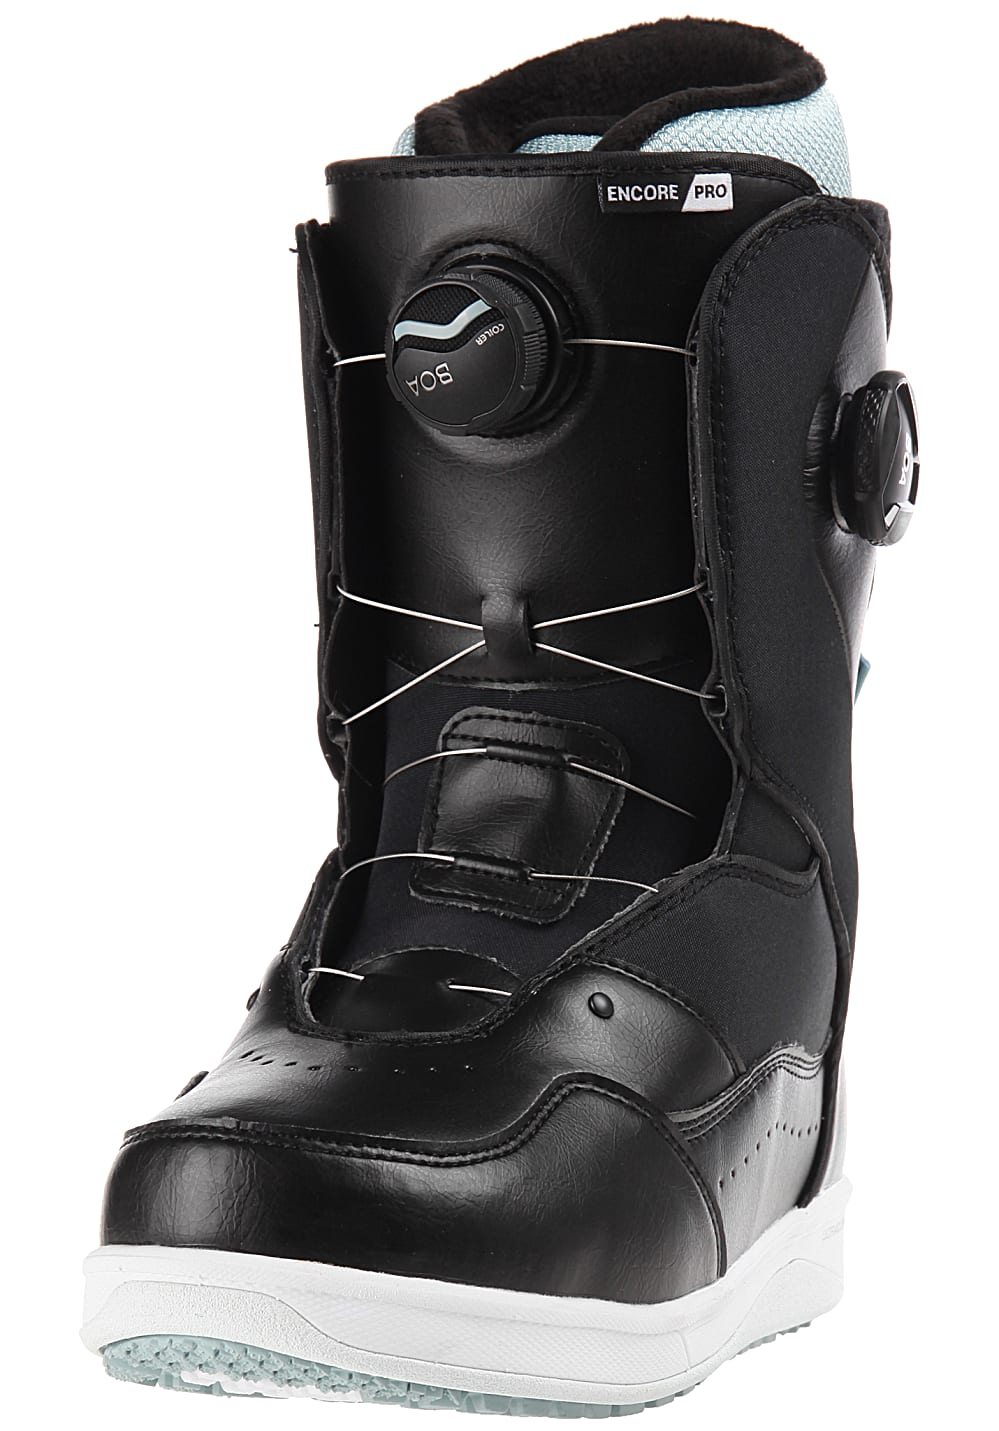 9472b2b03d Vans Encore Pro - Snowboard Boots for Women - Black - Planet Sports